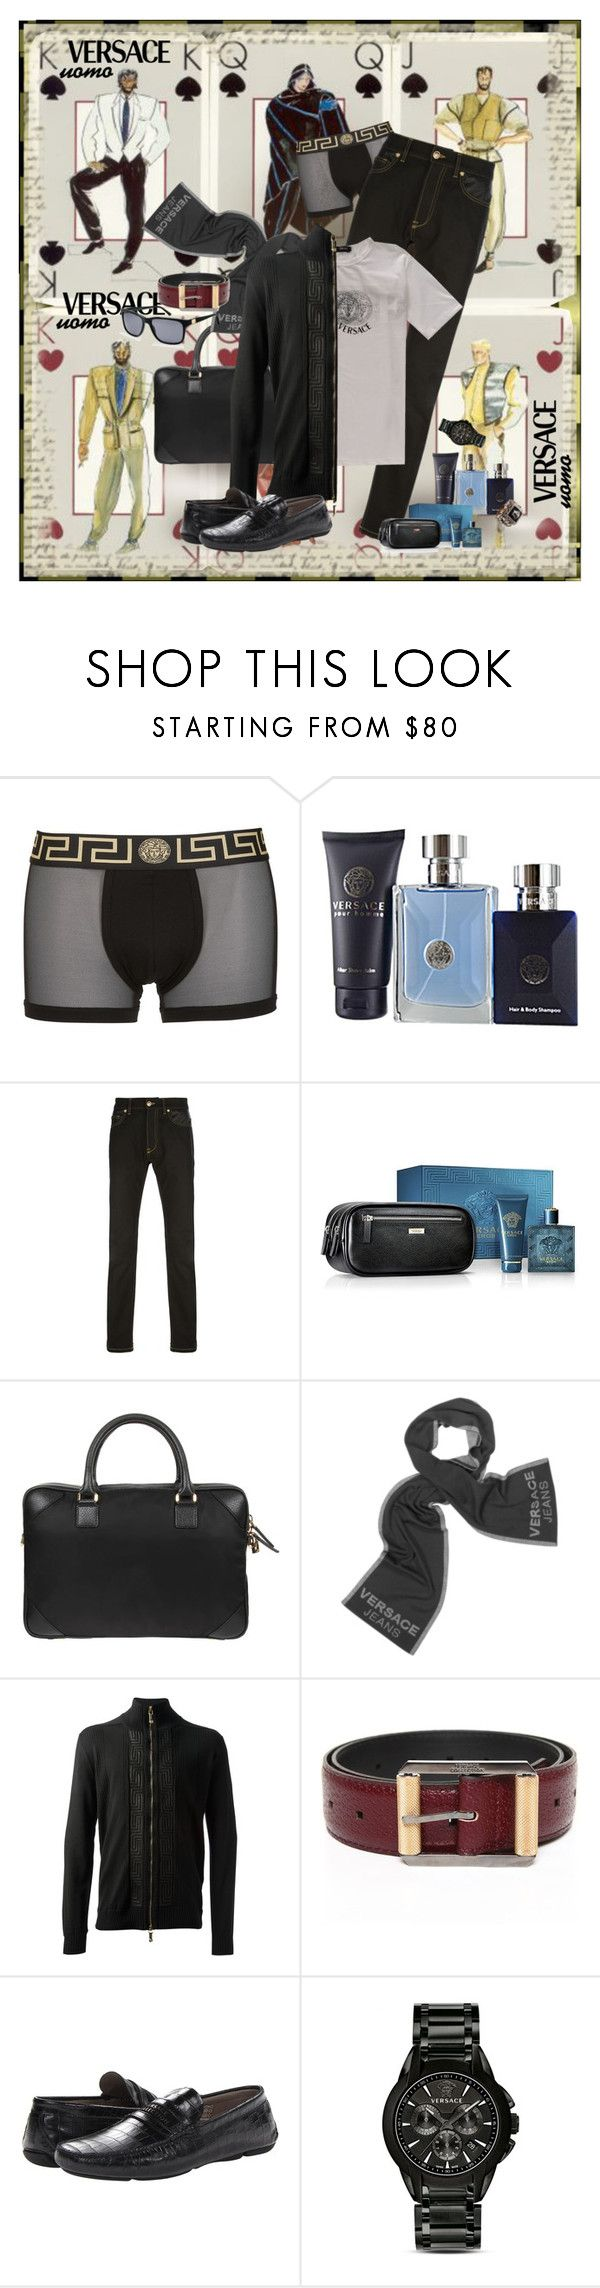 """Versace Uomo"" by halebugg ❤ liked on Polyvore featuring Versace, vintage, versace, designer, menswear and accessories"